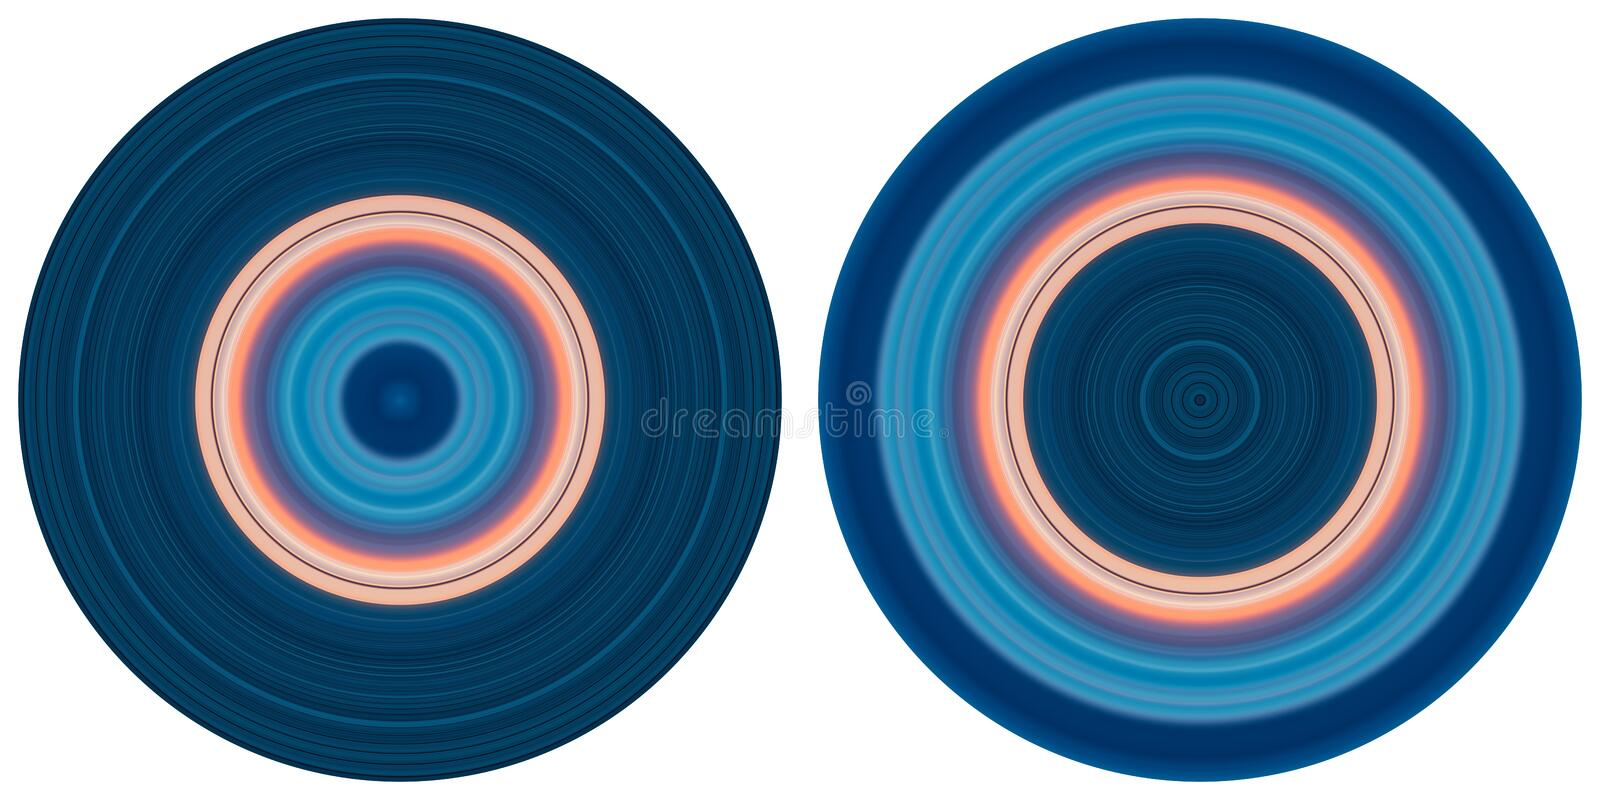 Set of 2 bright abstract colorful circles isolated on white background. Circular lines , radial striped texture in pink and blue t royalty free illustration